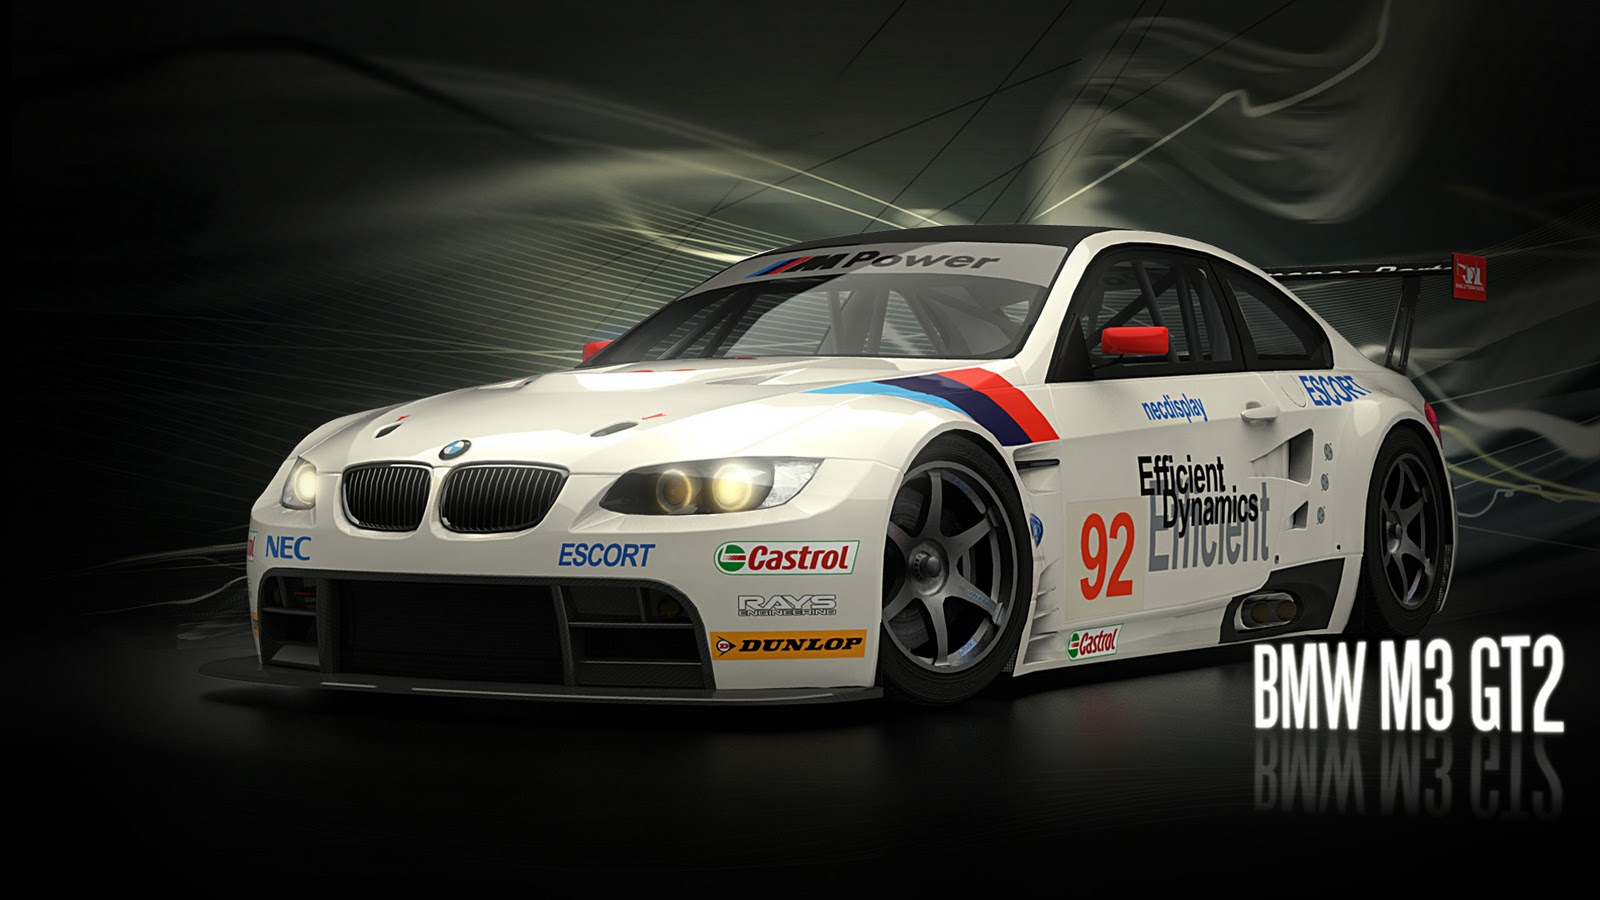 KING AD RULES BMW M3 GTR